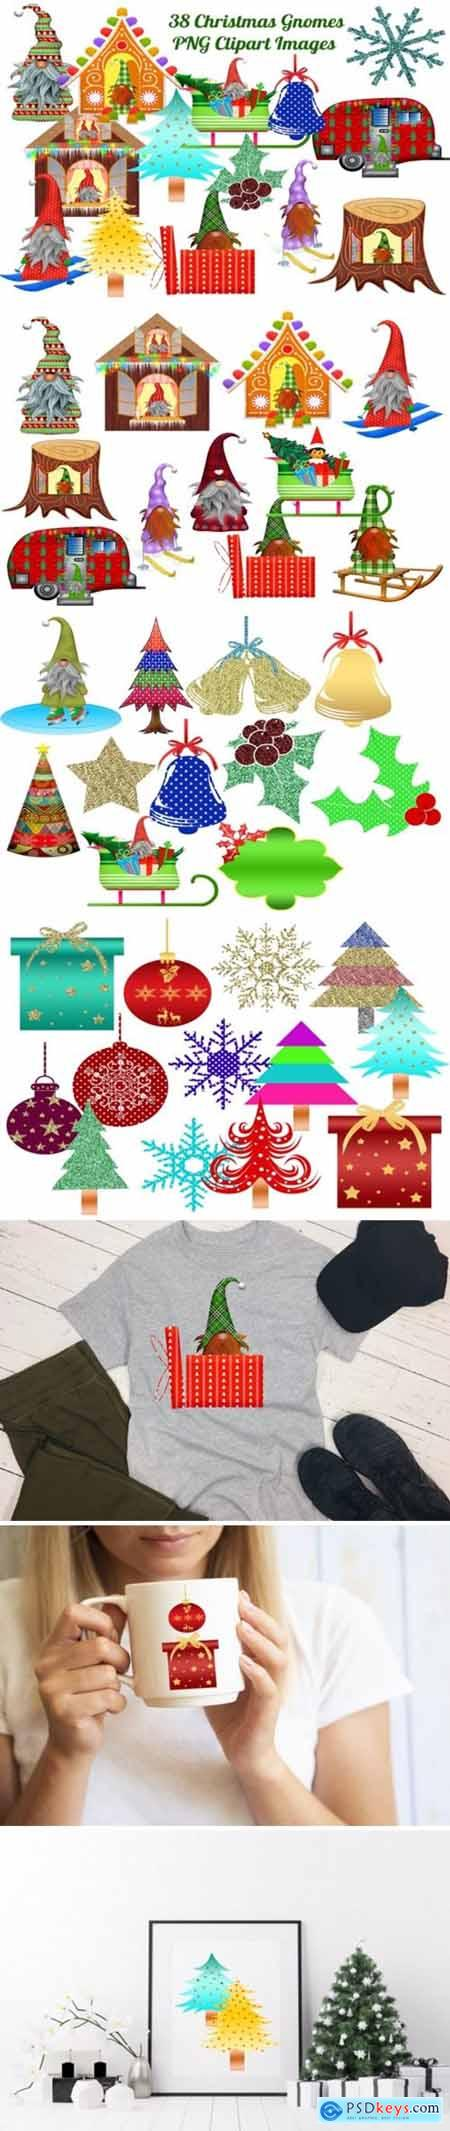 38 Christmas Gnomes Clip Art Images 1977906